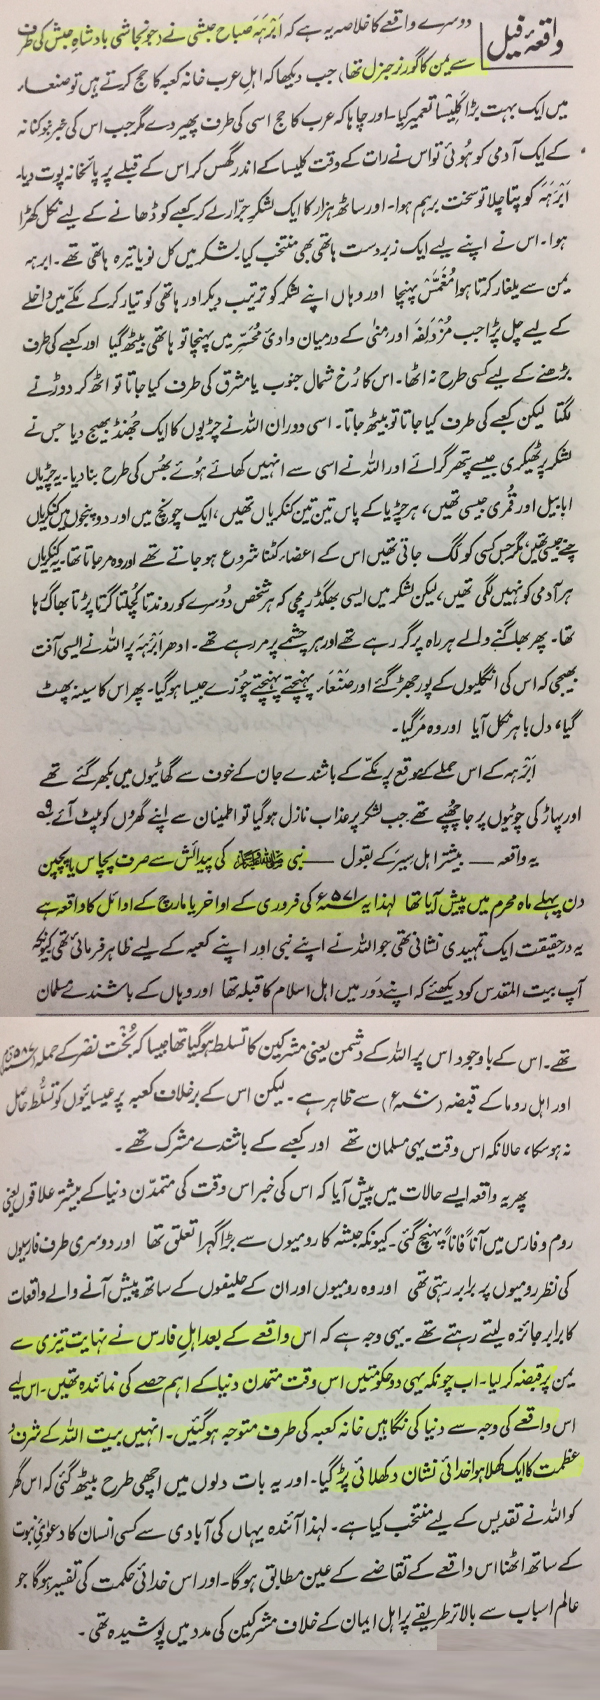 Waqia e Feel Islamic History